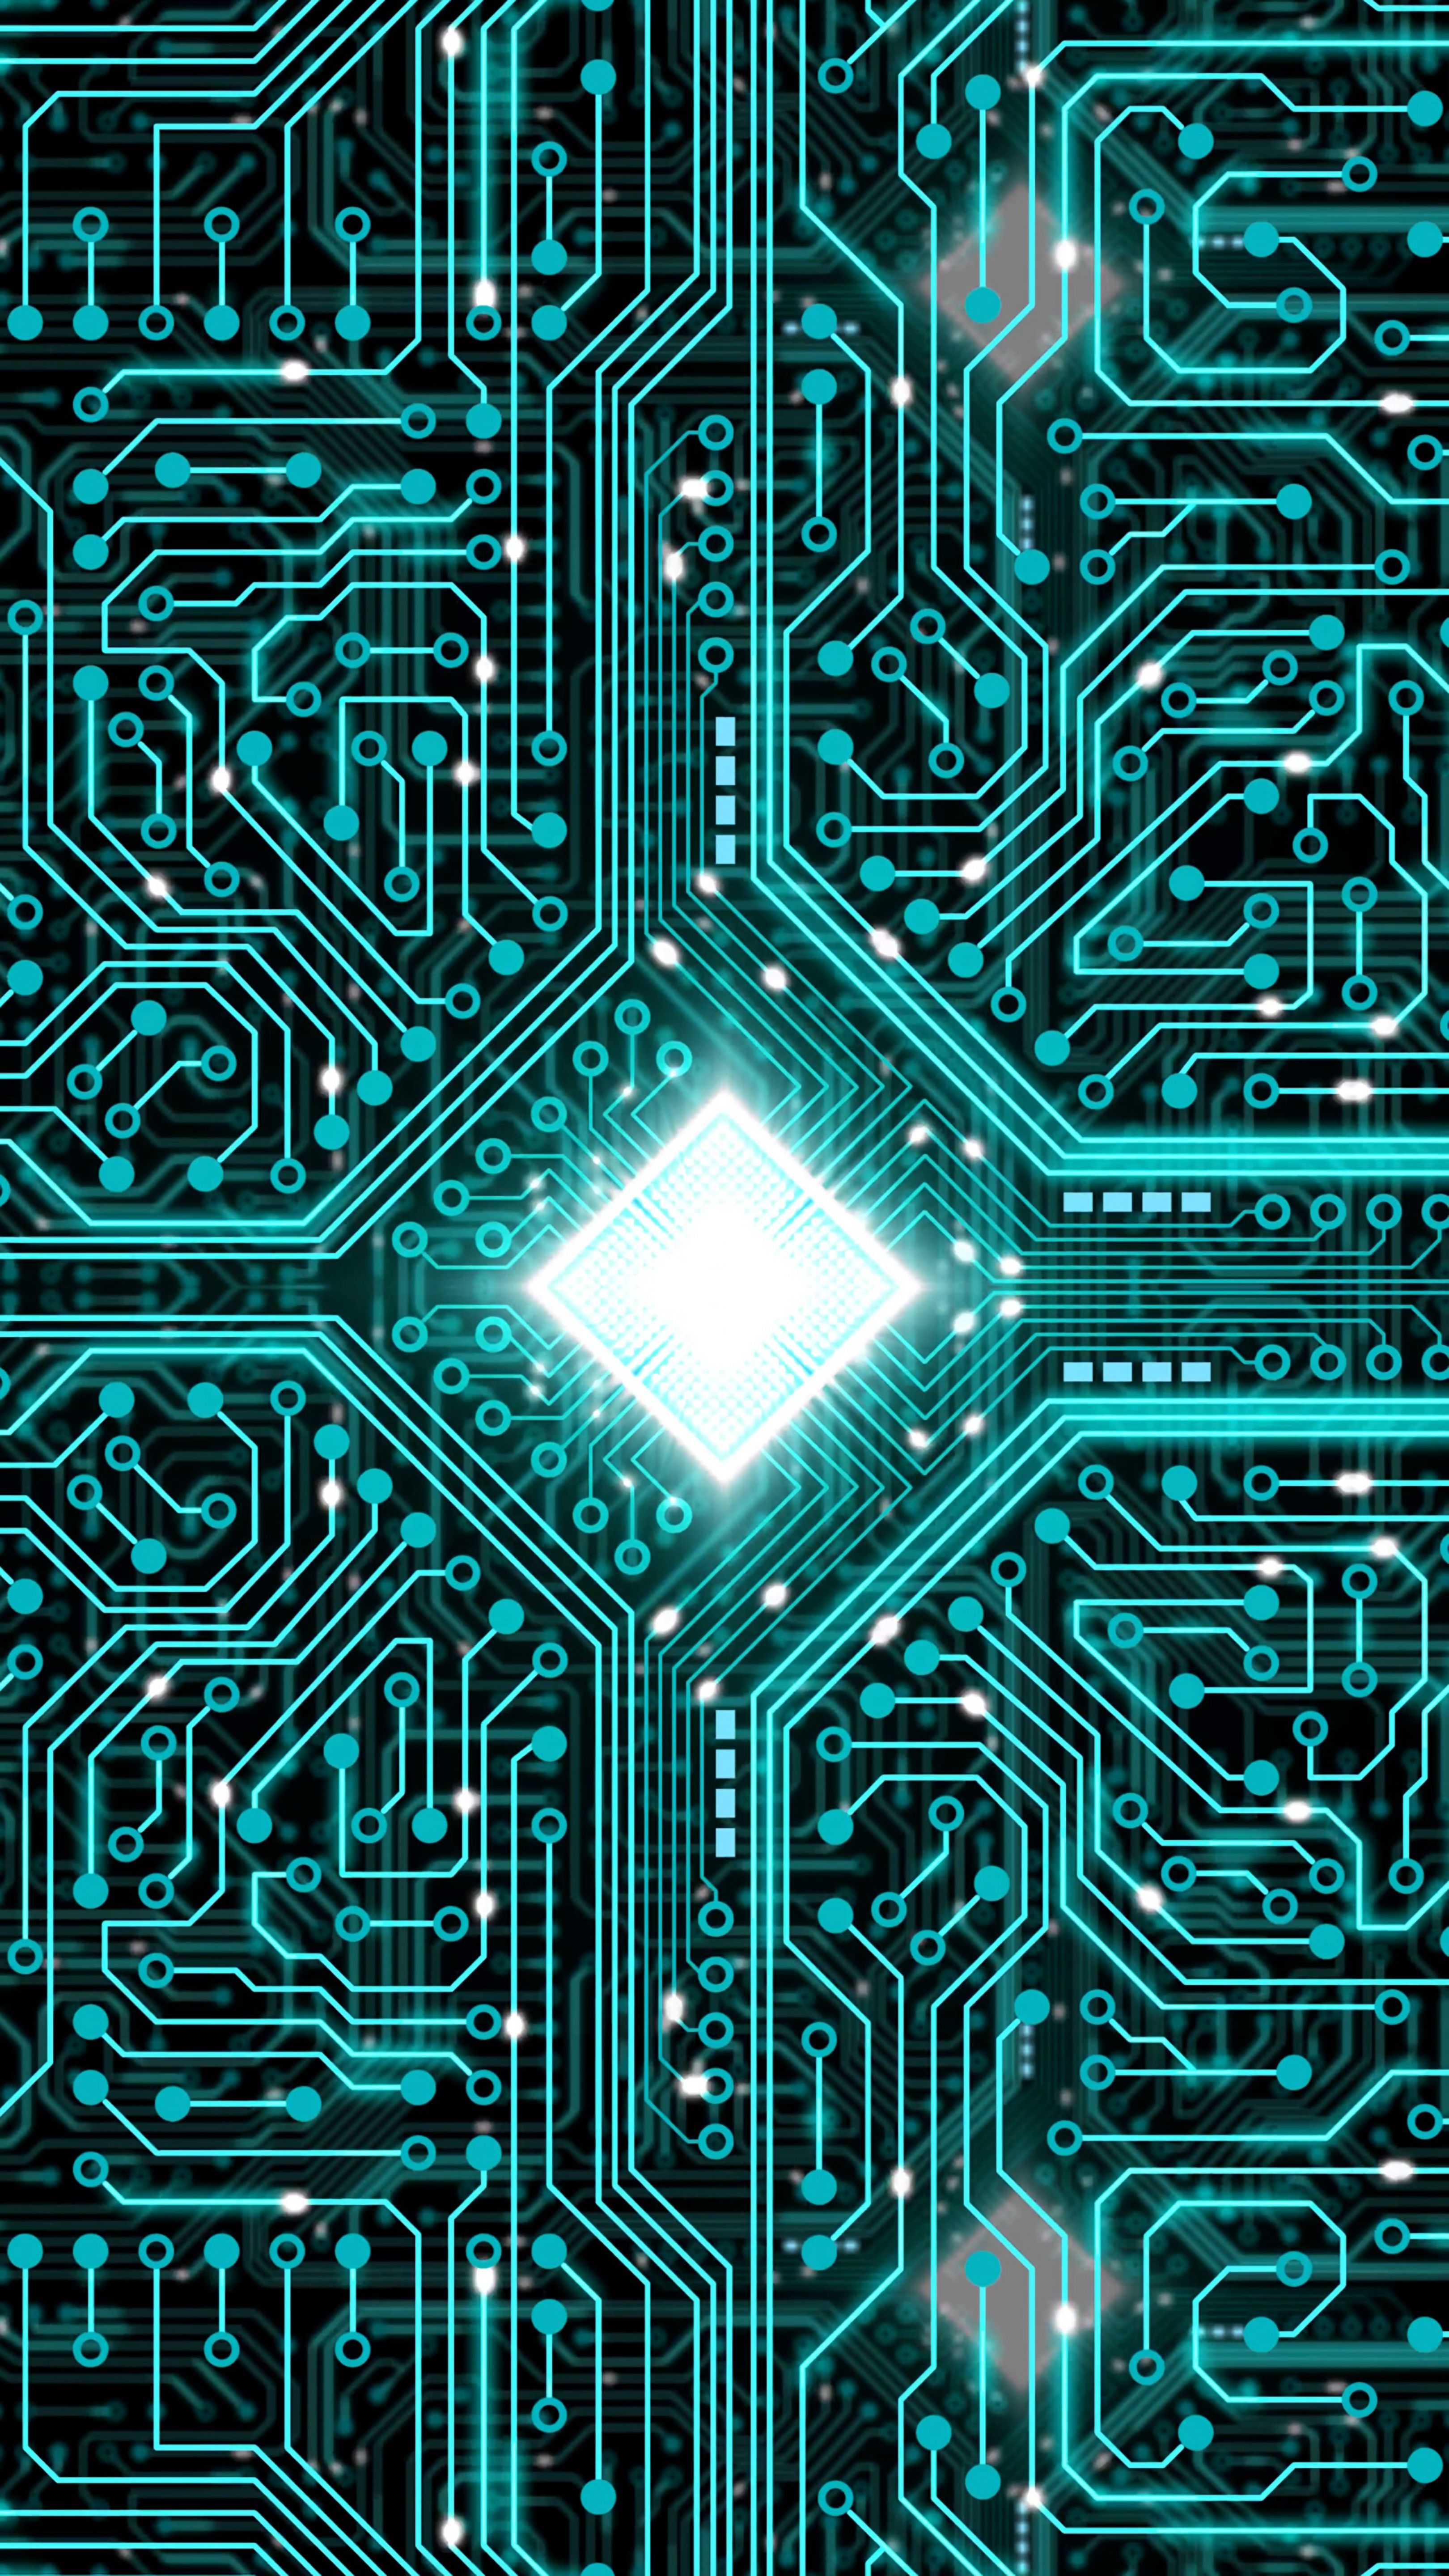 Wallpapers Printed Circuit Board Central Processing Unit Integrated Circuits Chips Chipset Technology Wallpaper Phone Wallpaper Design Electronics Wallpaper